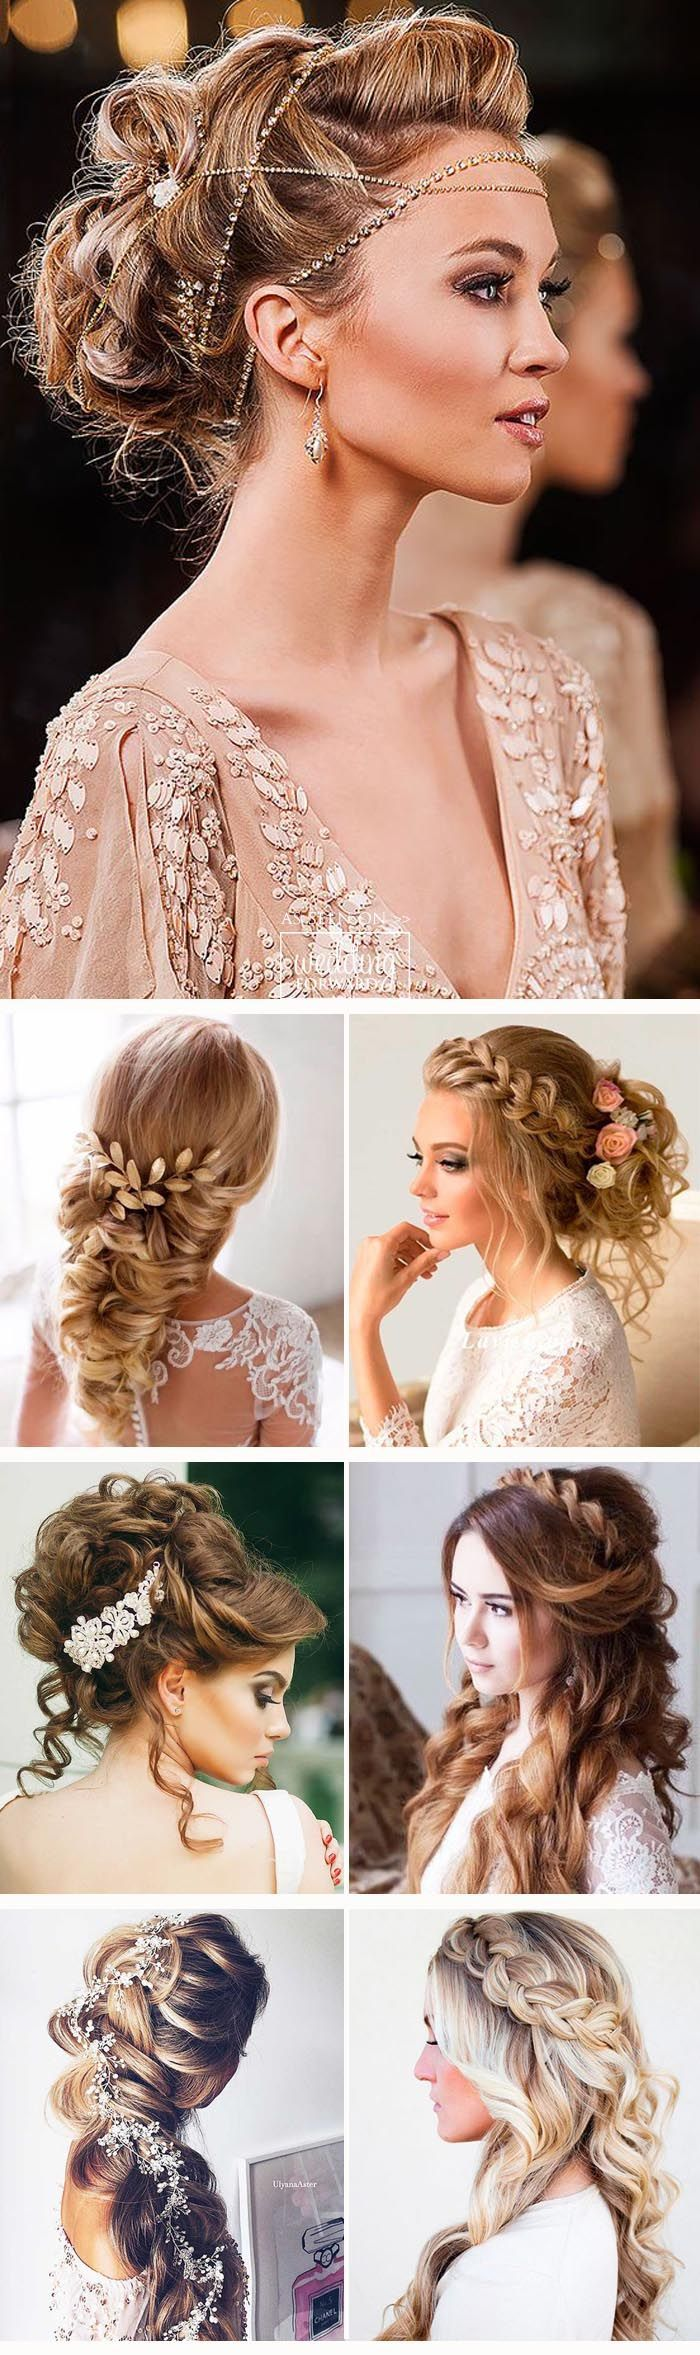 24 Greek Wedding Hairstyles For The Divine Brides :heart: Greek wedding hairstyl...